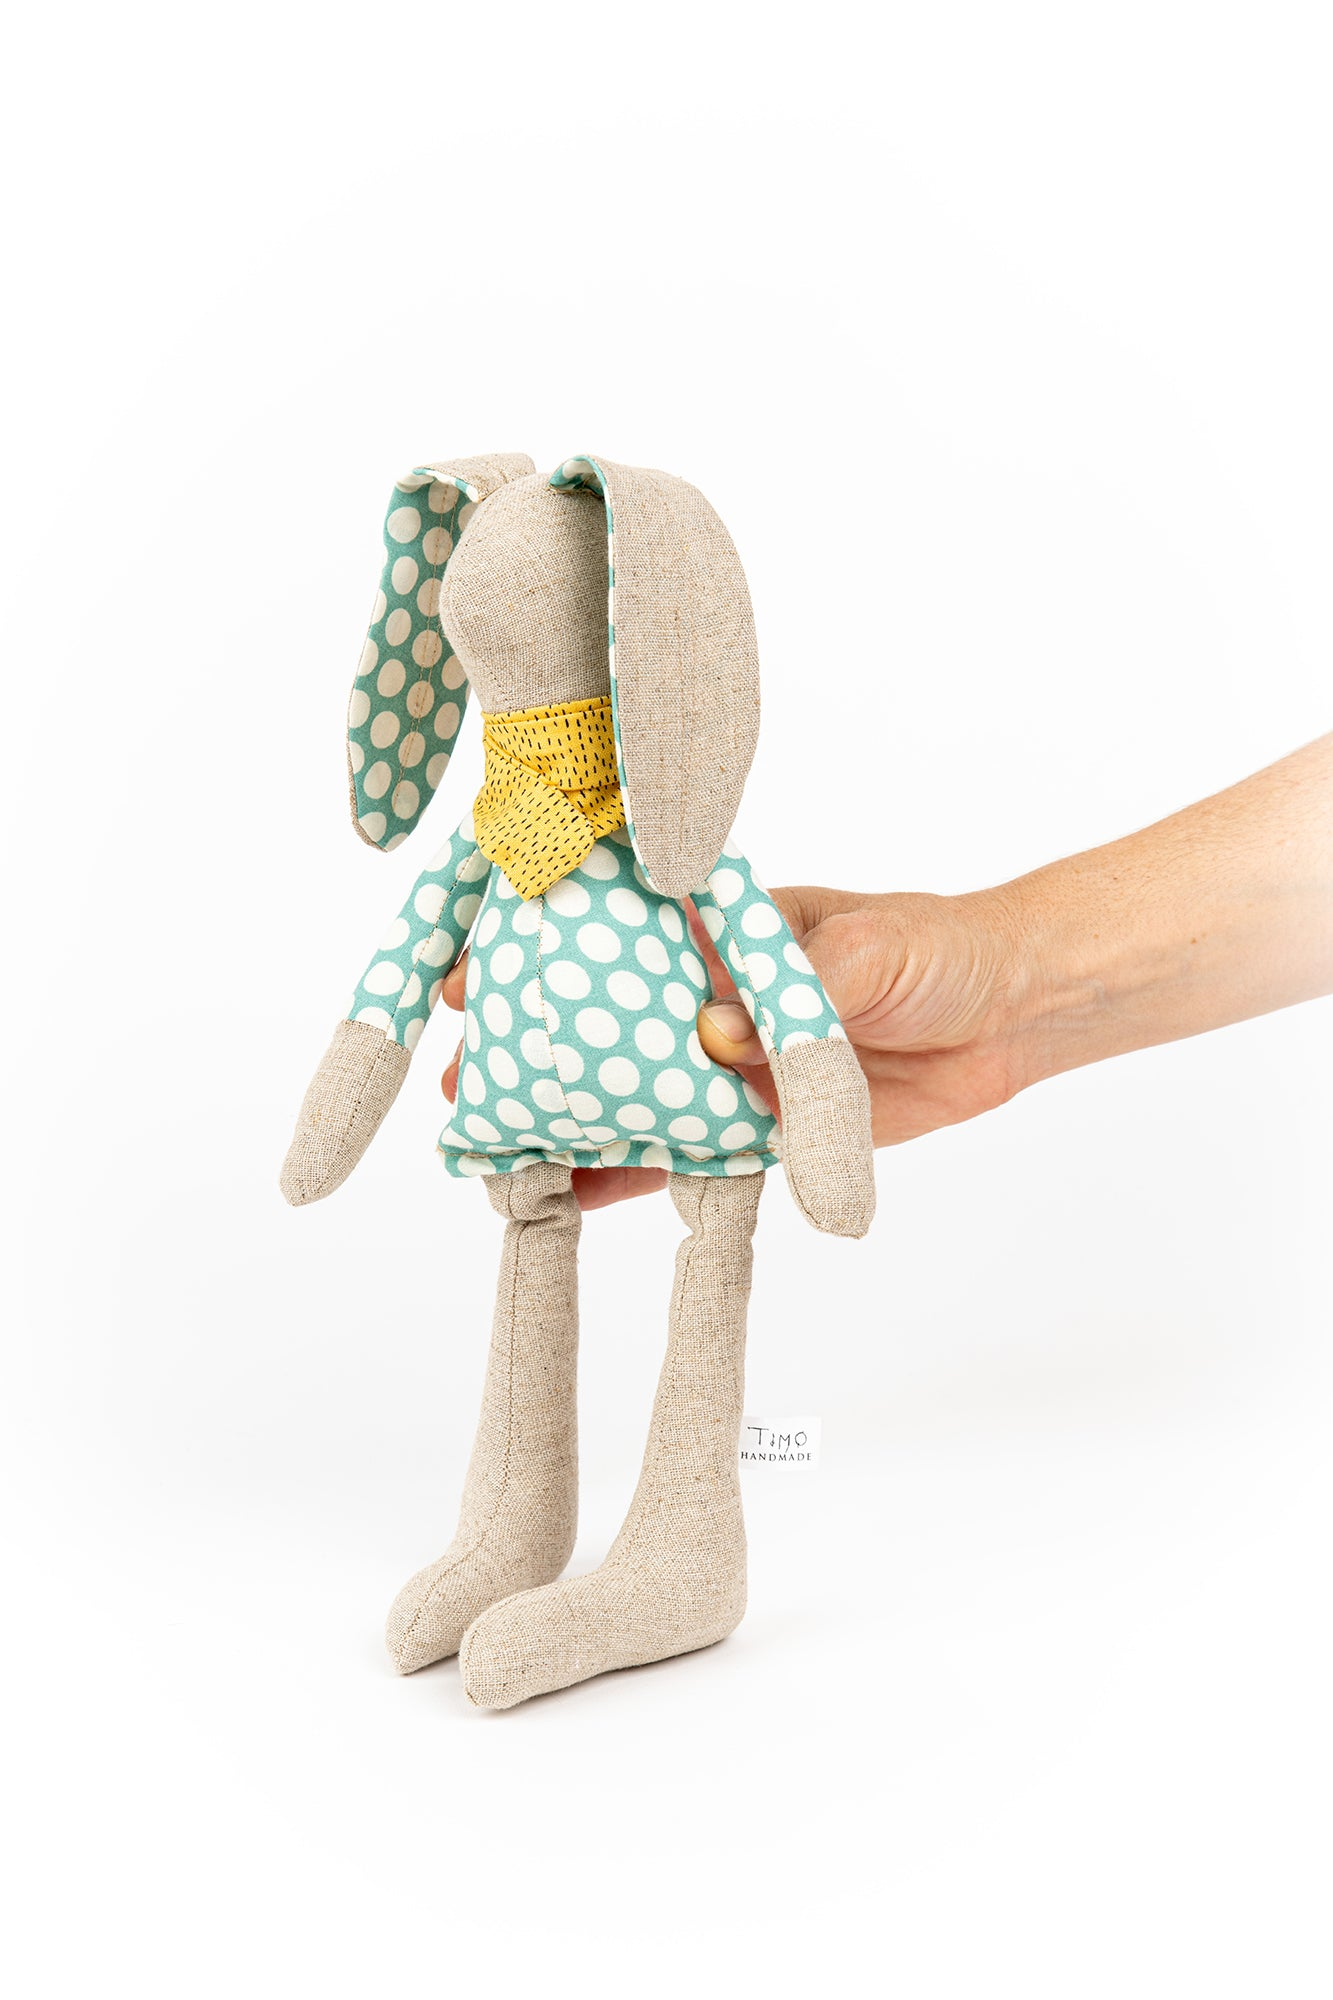 Handmade rabbit doll, Doll toy, Plush bunny, Stuffed animal, Newborns gift idea, Cloth doll, Textile art dolls, Plush toy, Fabric doll, Hare